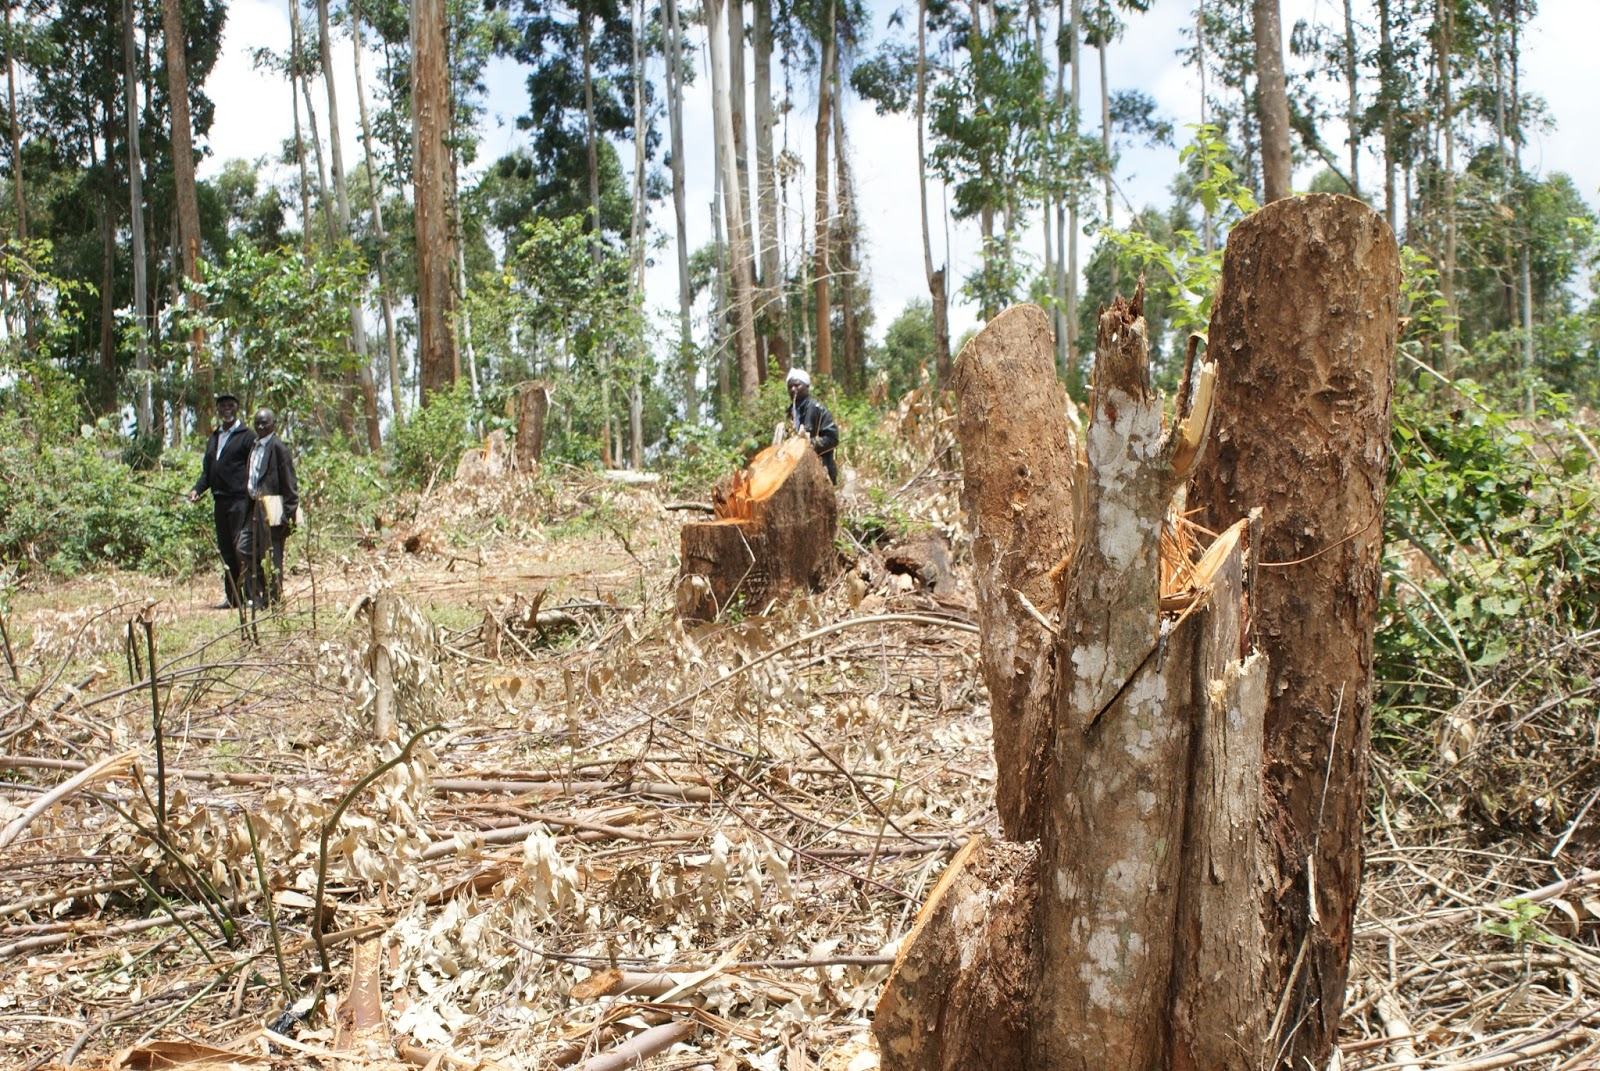 Kenya pledges to achieve over 10pc forest cover by 2022